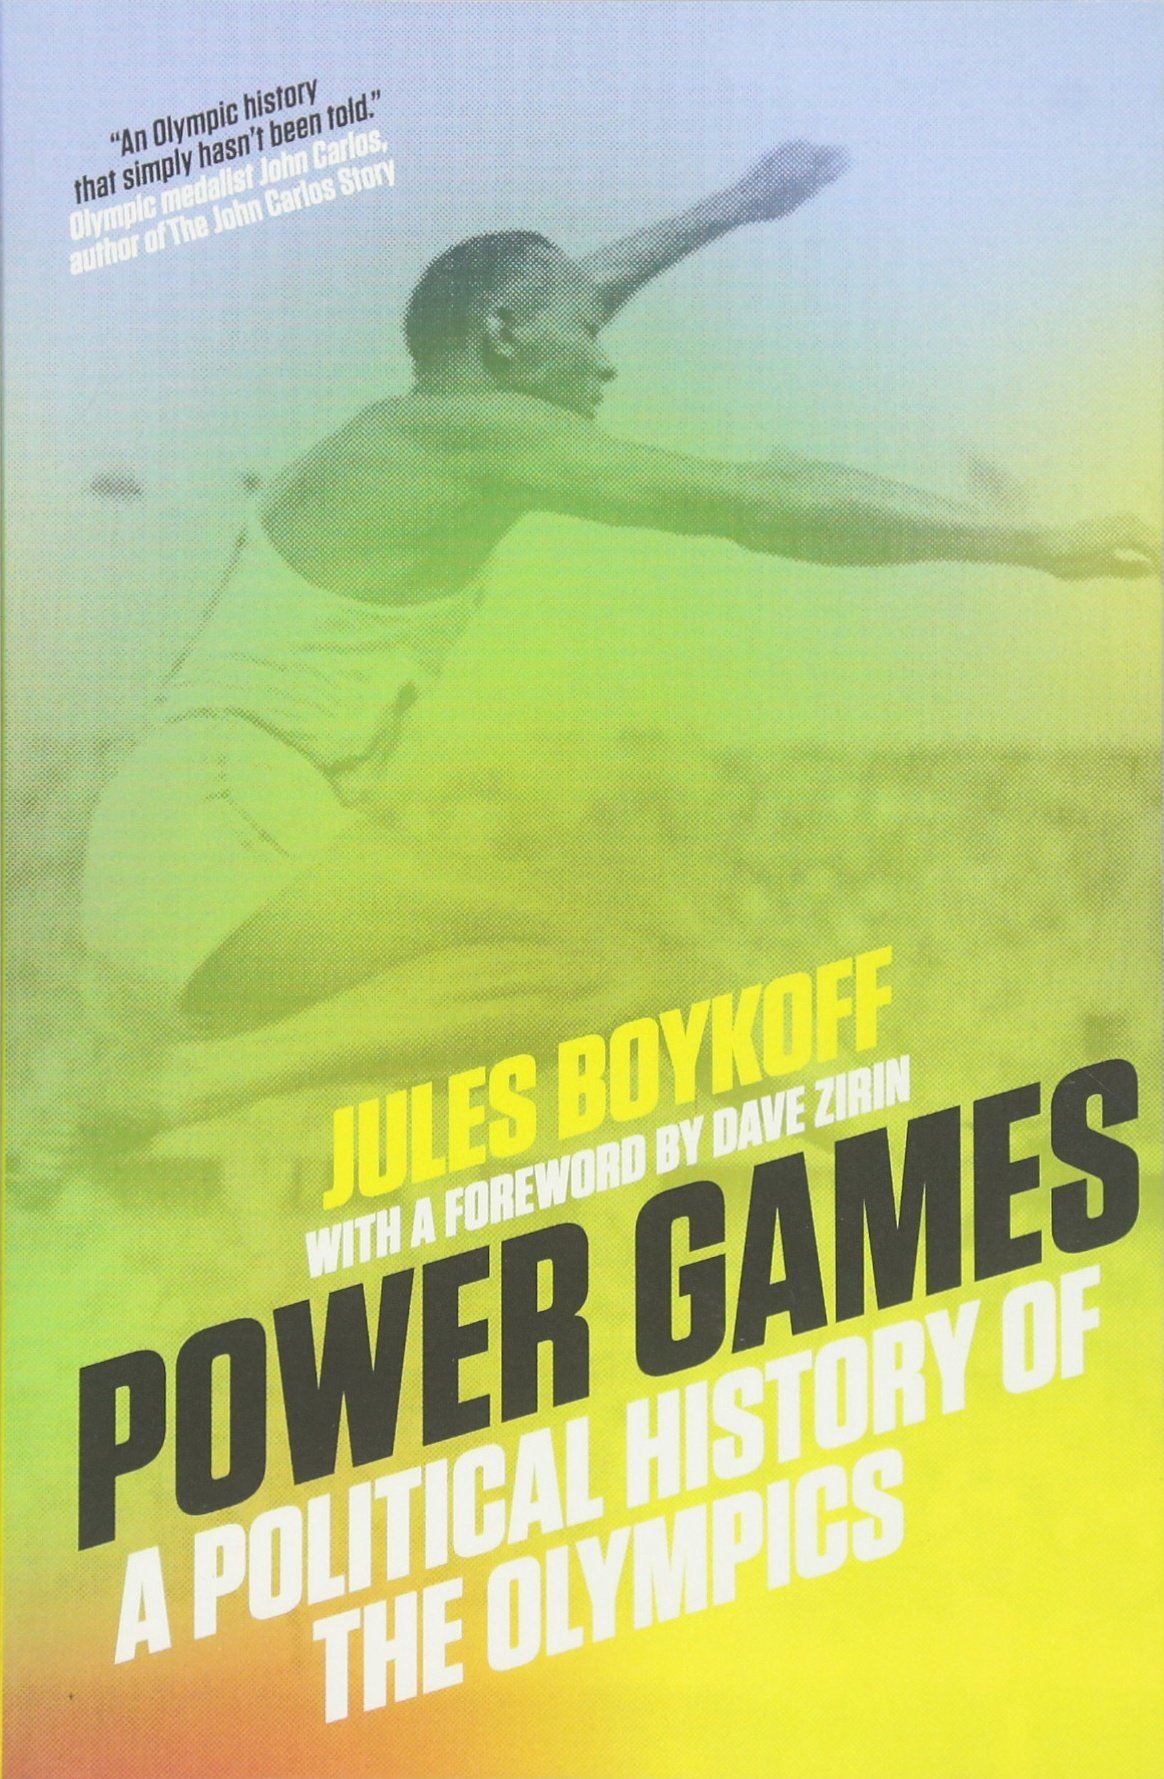 Power Games Political History Olympics product image